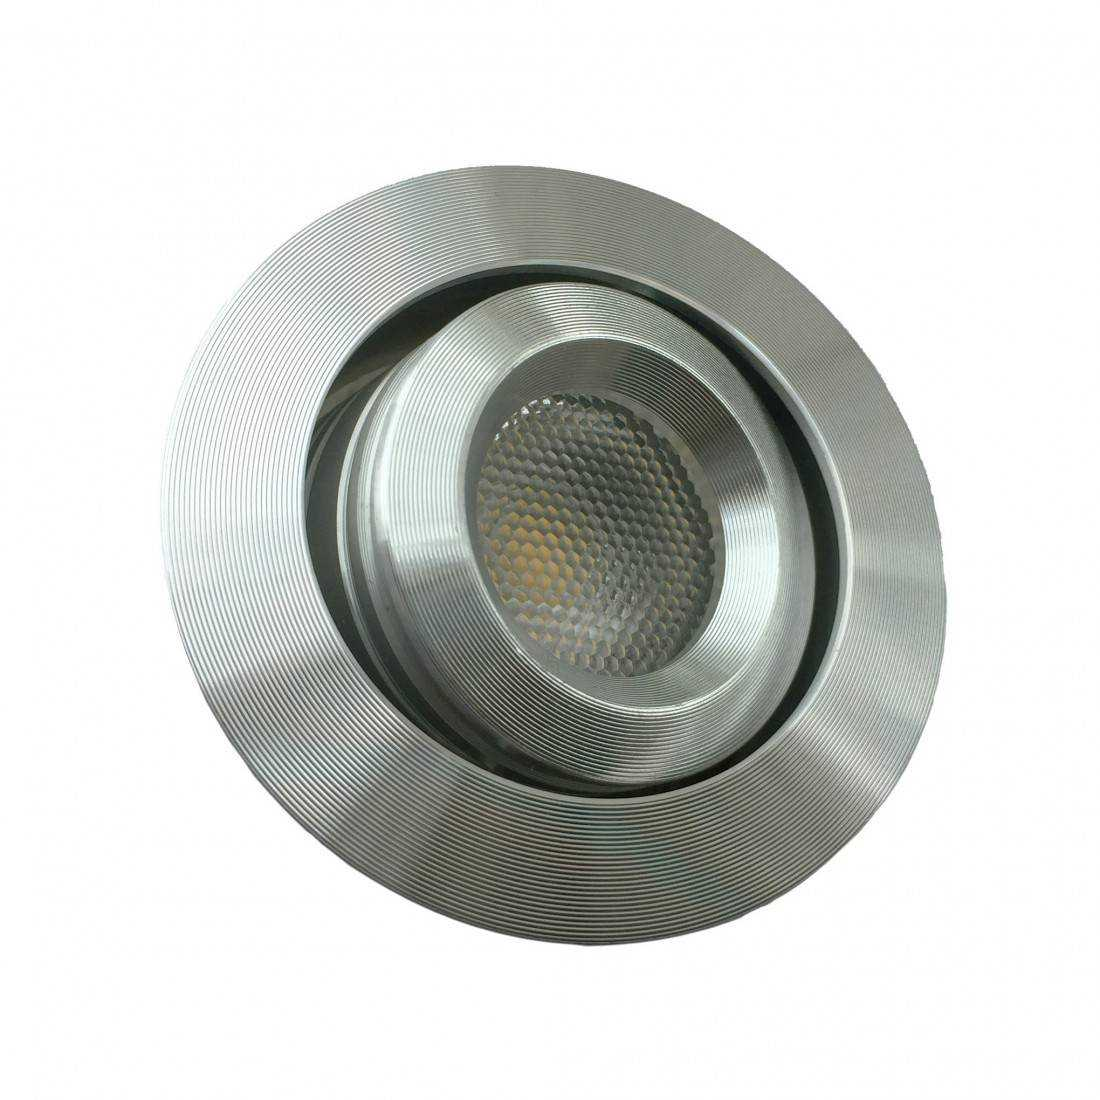 Spot Led Encastrable Plafond Mini Spot Led Encastrable 3w - 230v